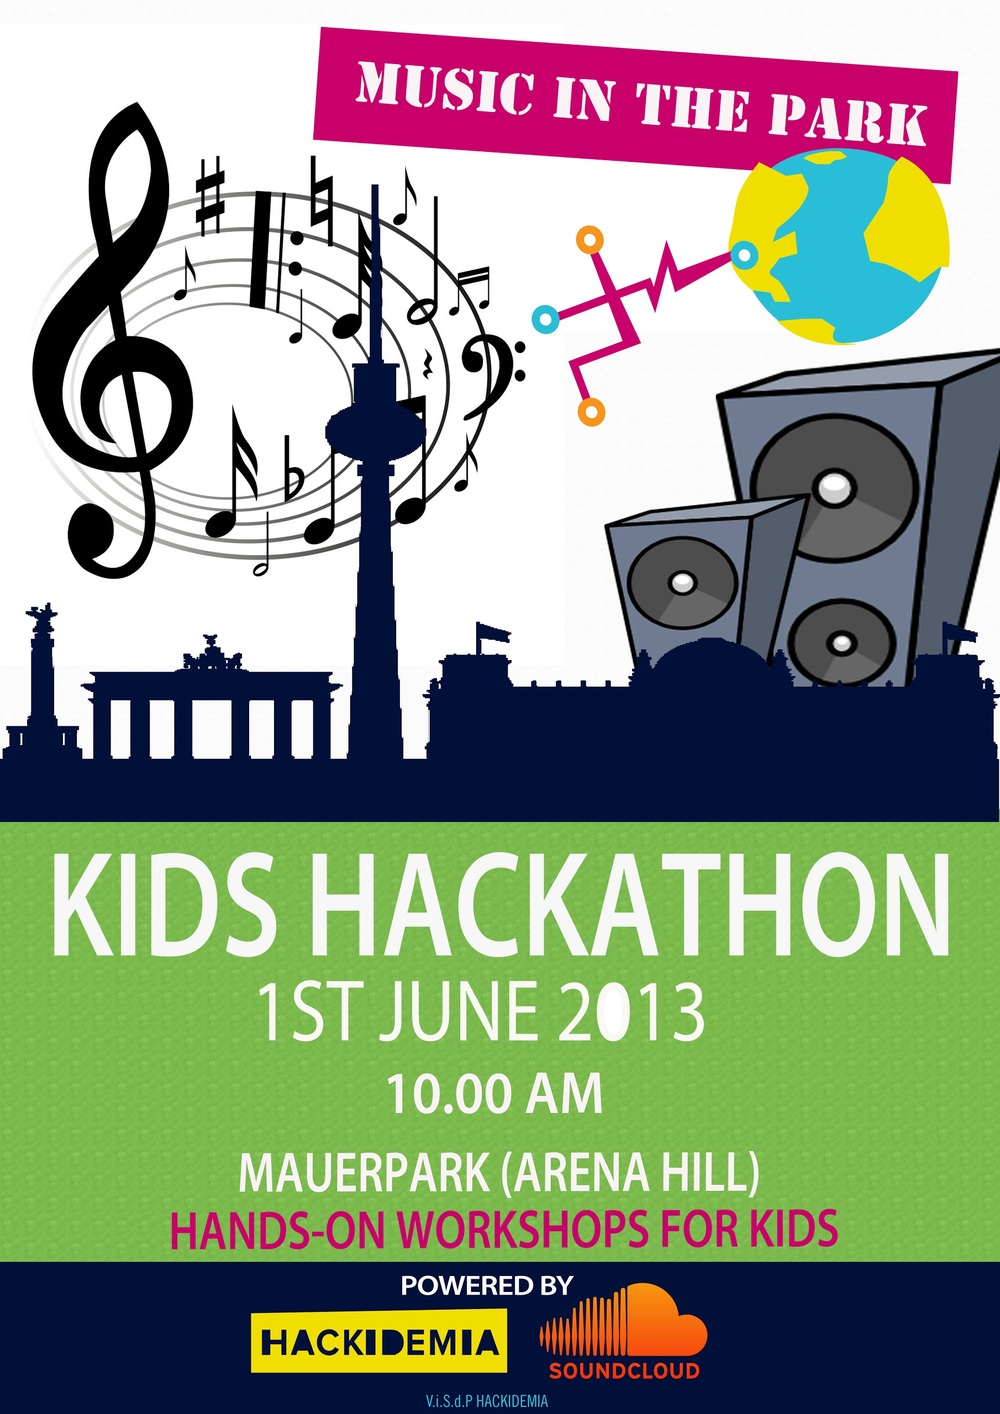 Kids Hackathon Berlin  #2 - Music Making Edition